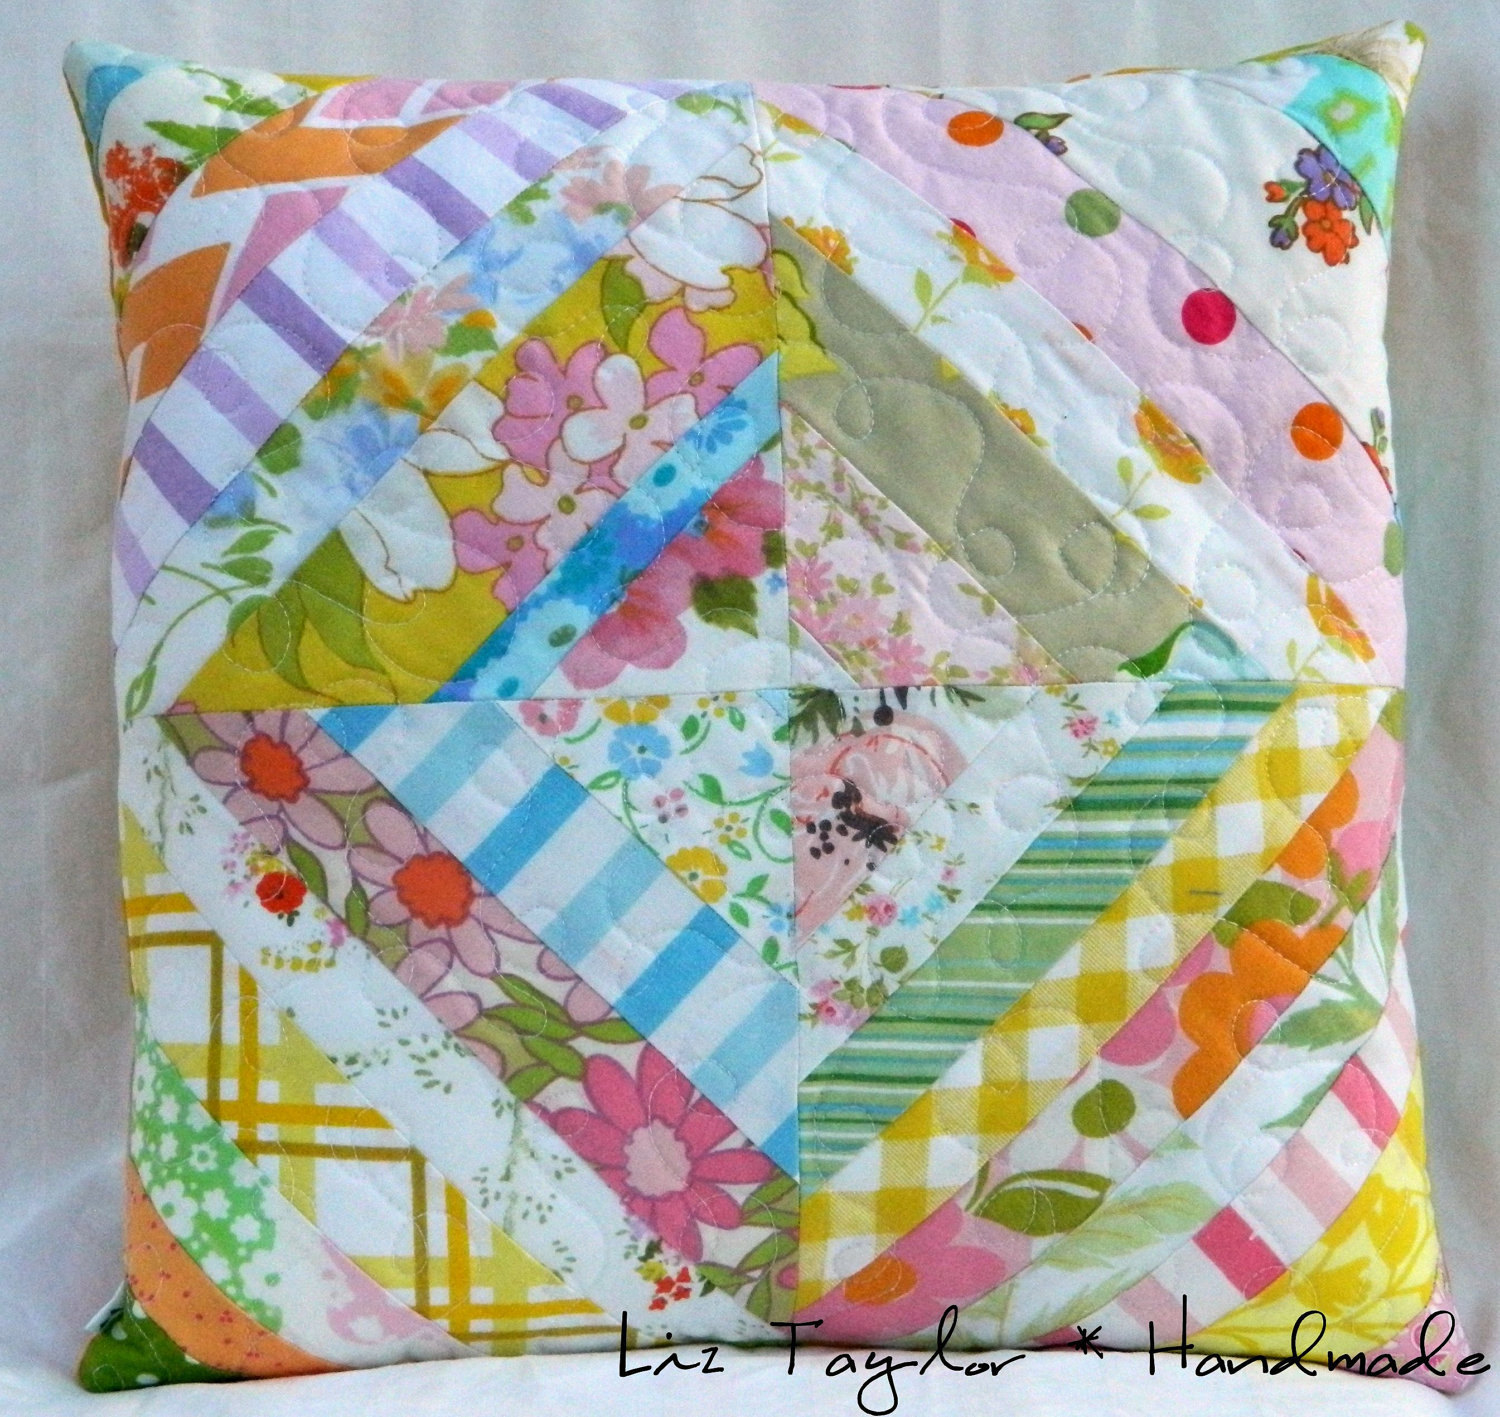 Quilted Decorative Pillow Covers : Handmade quilted pillow cover vintage sheets by LizTaylorHandmade